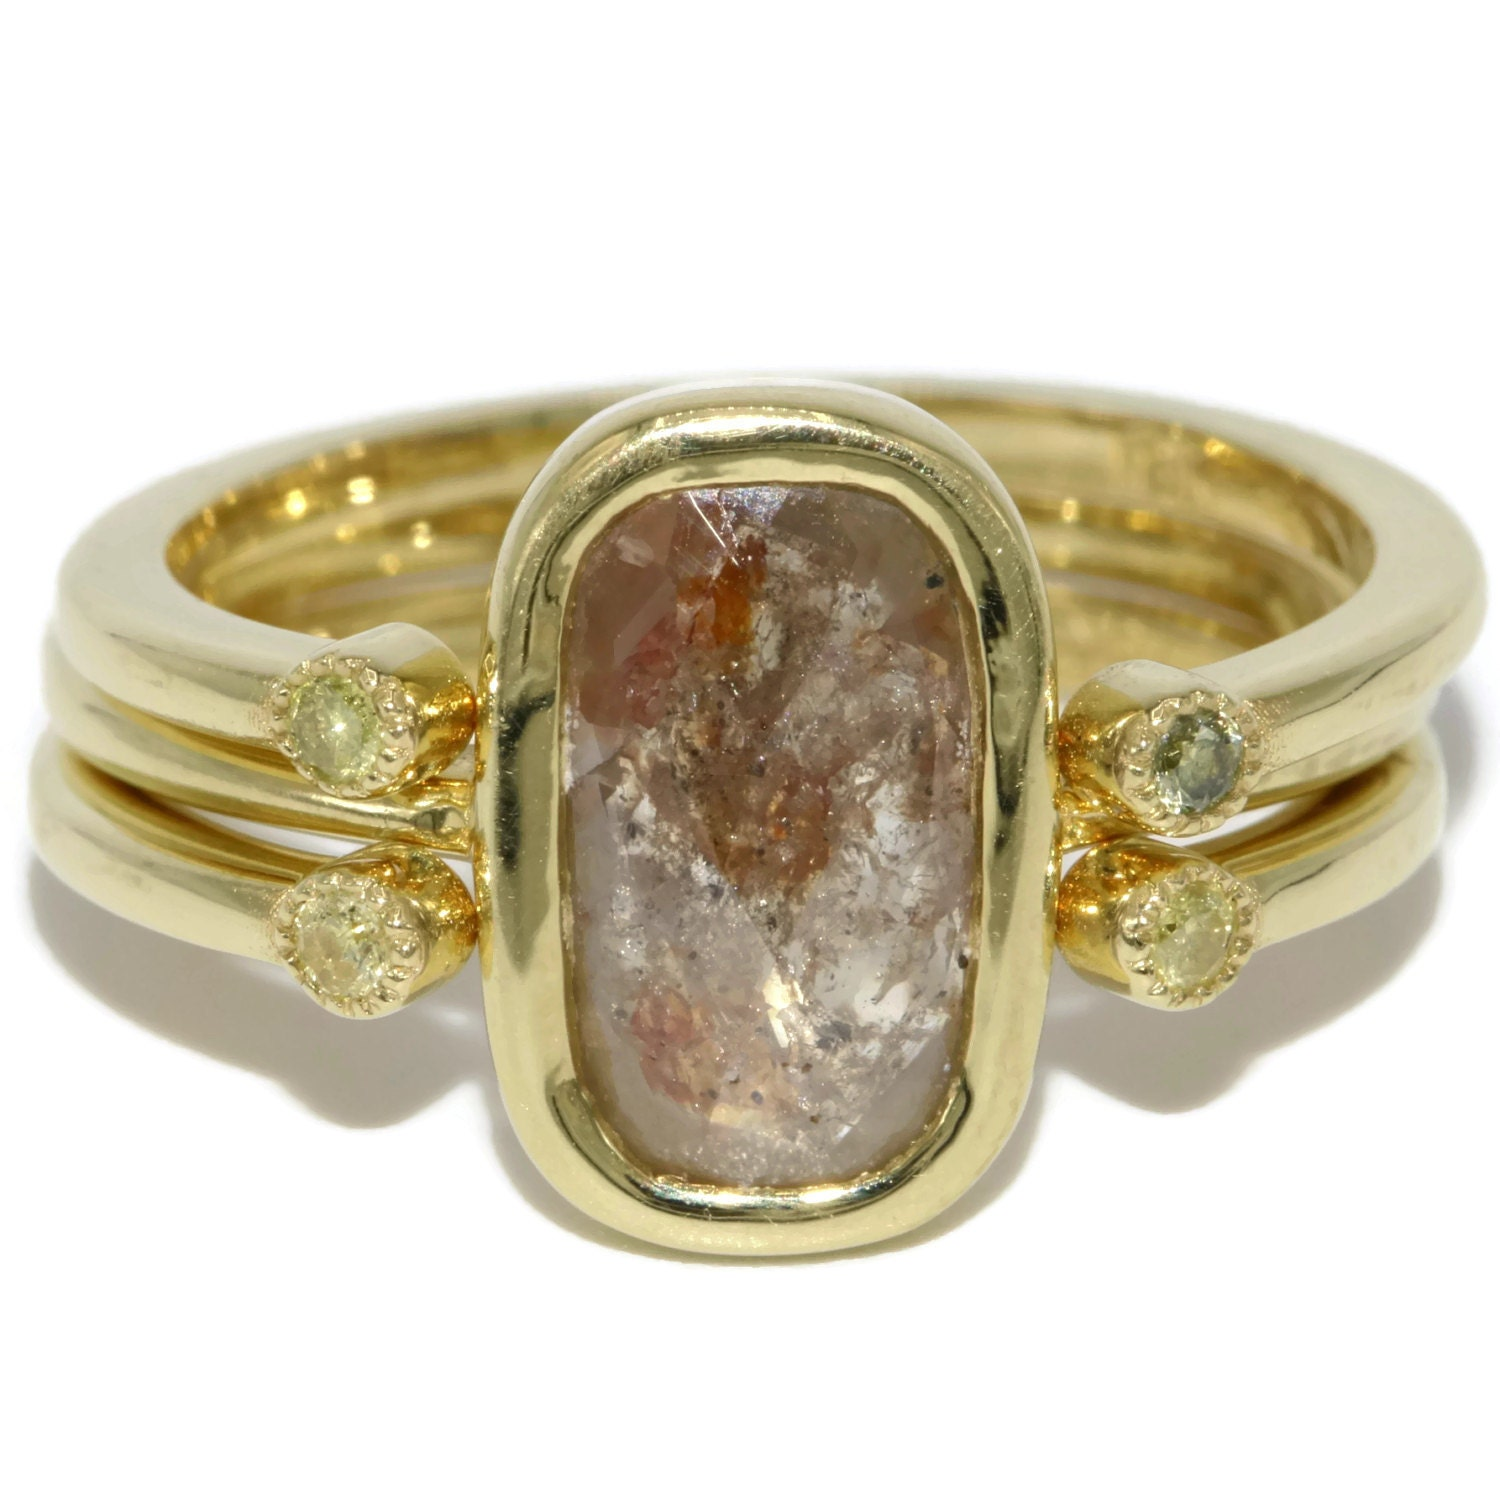 Rustic Diamond: Rose Cut Rustic Diamond Ring Stacking Ring Set 18k Gold